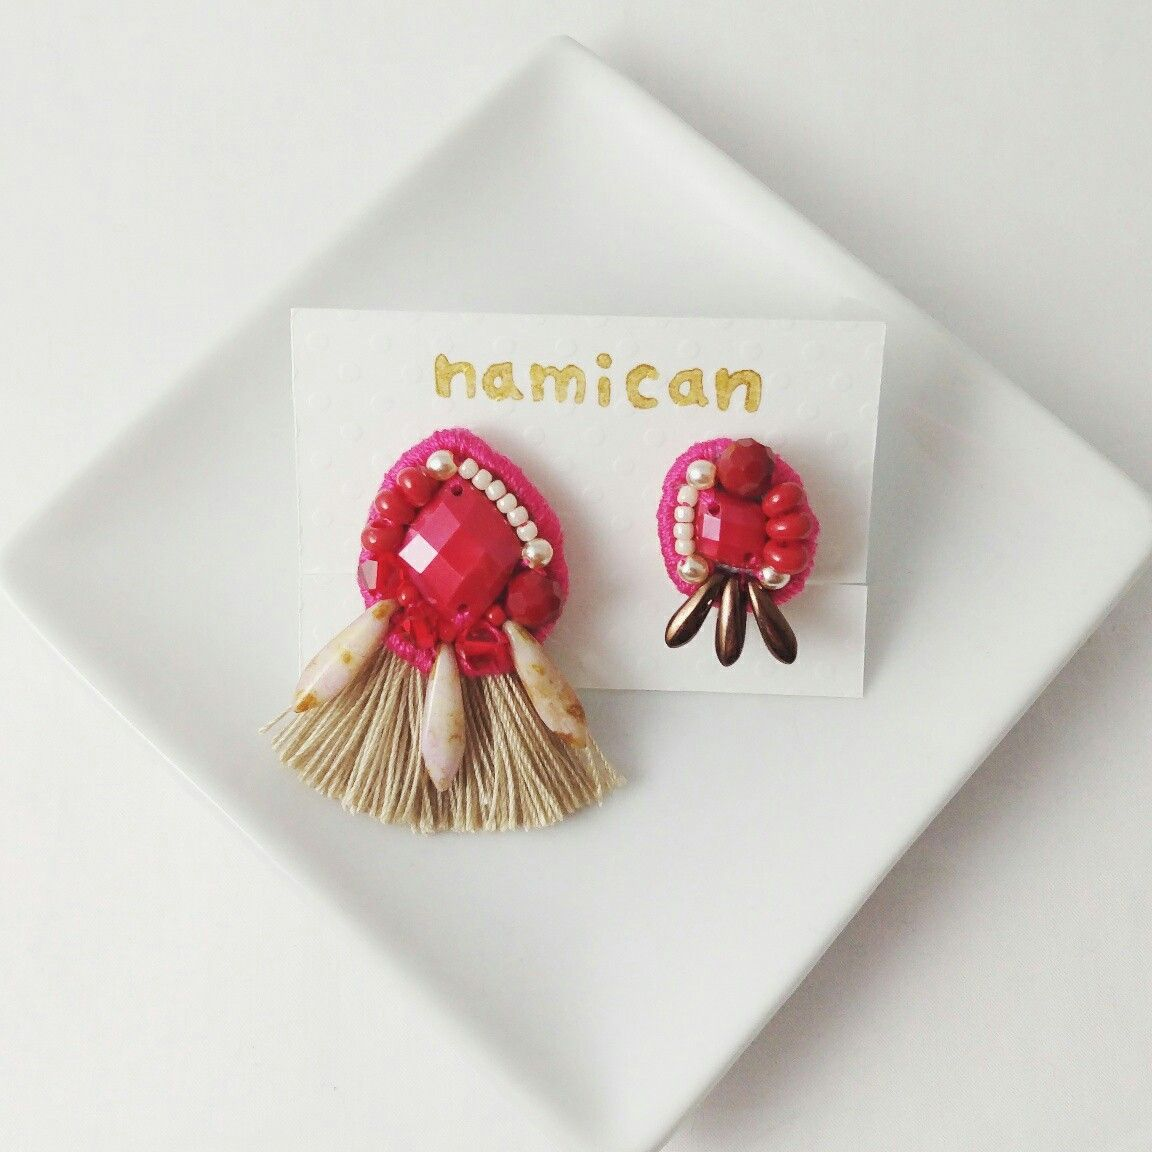 Hand made accessory by namican